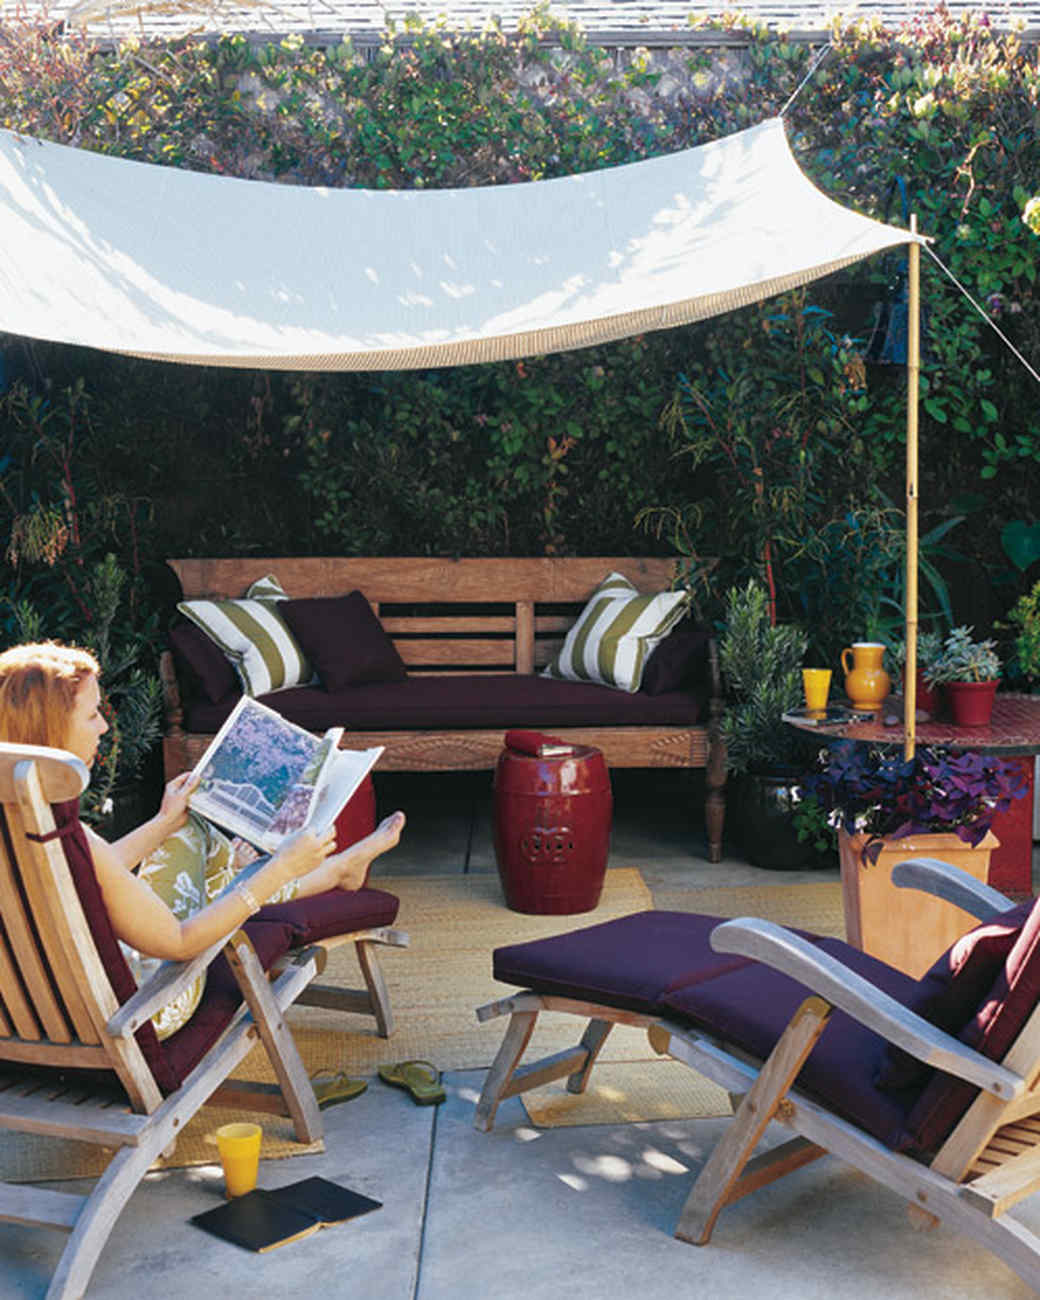 & A Slice of Shade: Creating Canopies | Martha Stewart